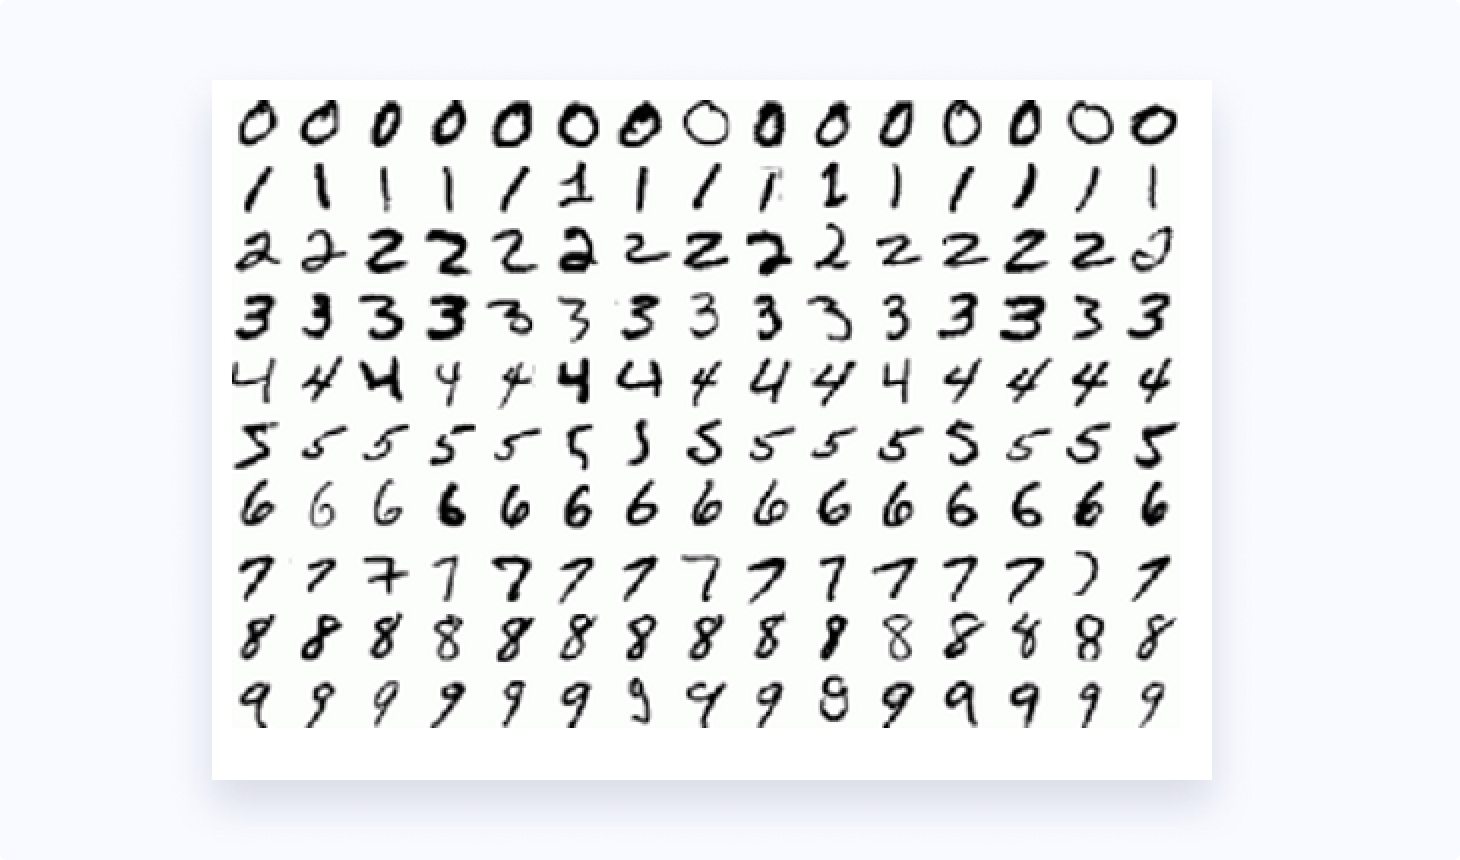 Sample Handwritten Digits From MNIST Dataset